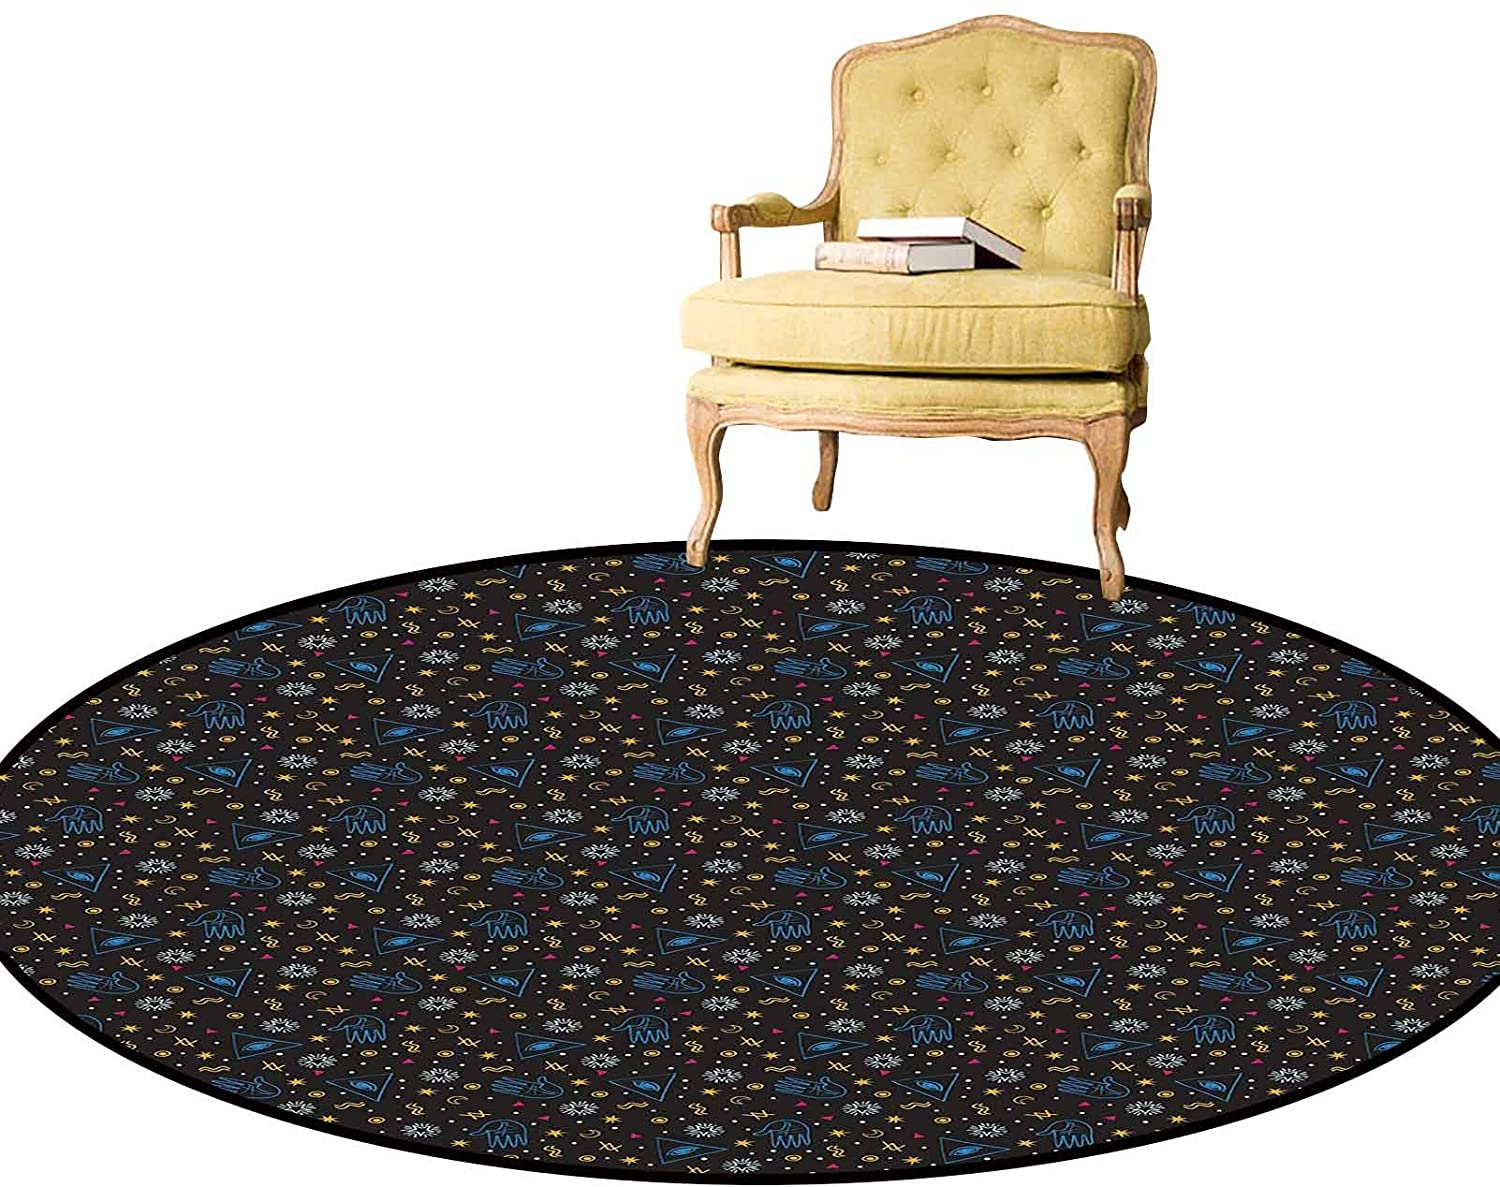 Area Rug Alchemy Mystic Eye Triangles Palms Moons Stars Astrology Symbols Lines Stylish Rug Super Soft, Easy to Sweep/Vacuum Seal Brown Multicolor Diameter - 4 Feet